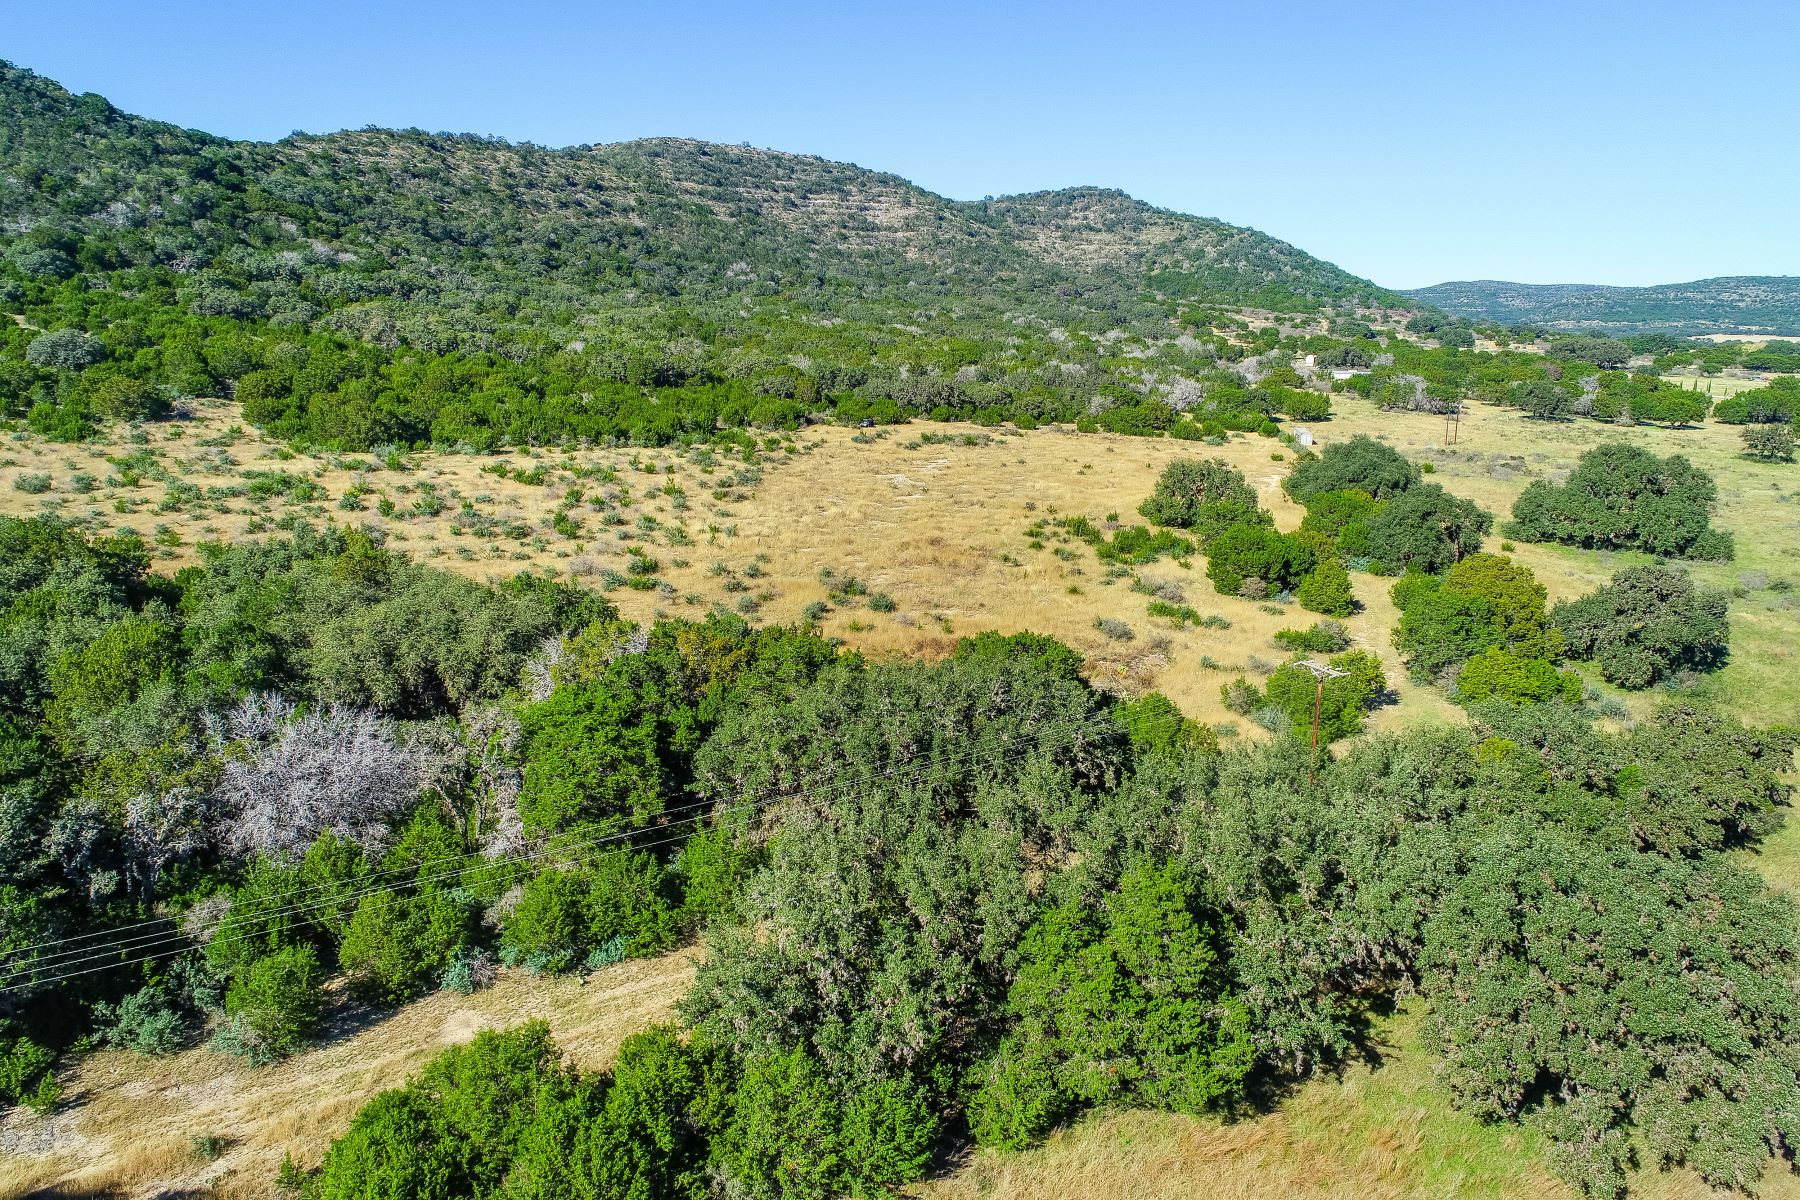 Farm / Ranch / Plantation for Sale at Lovely Property surrounded by Grand Trees 0 U.S. HWY 83 , Leakey, Texas 78873 Leakey, Texas 78873 United States